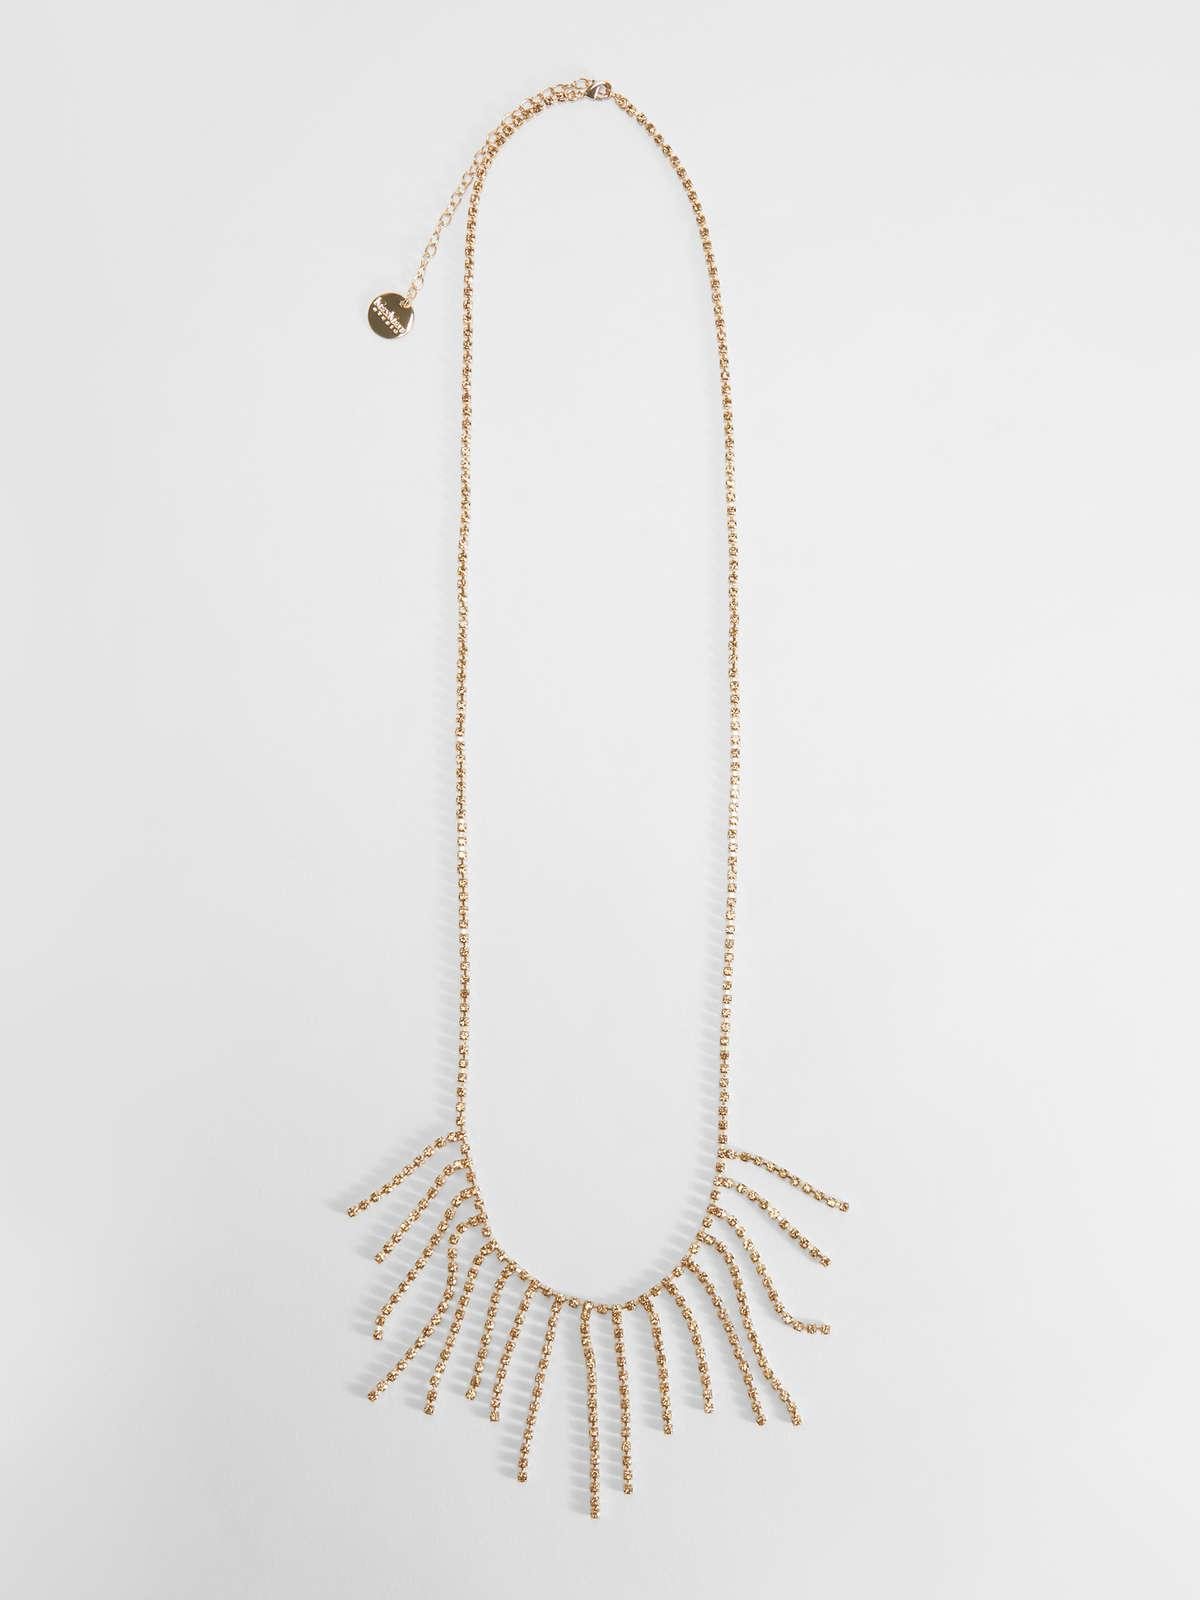 Womens Max Mara Jewelry   Rhinestone And Metal Long Necklace Gold